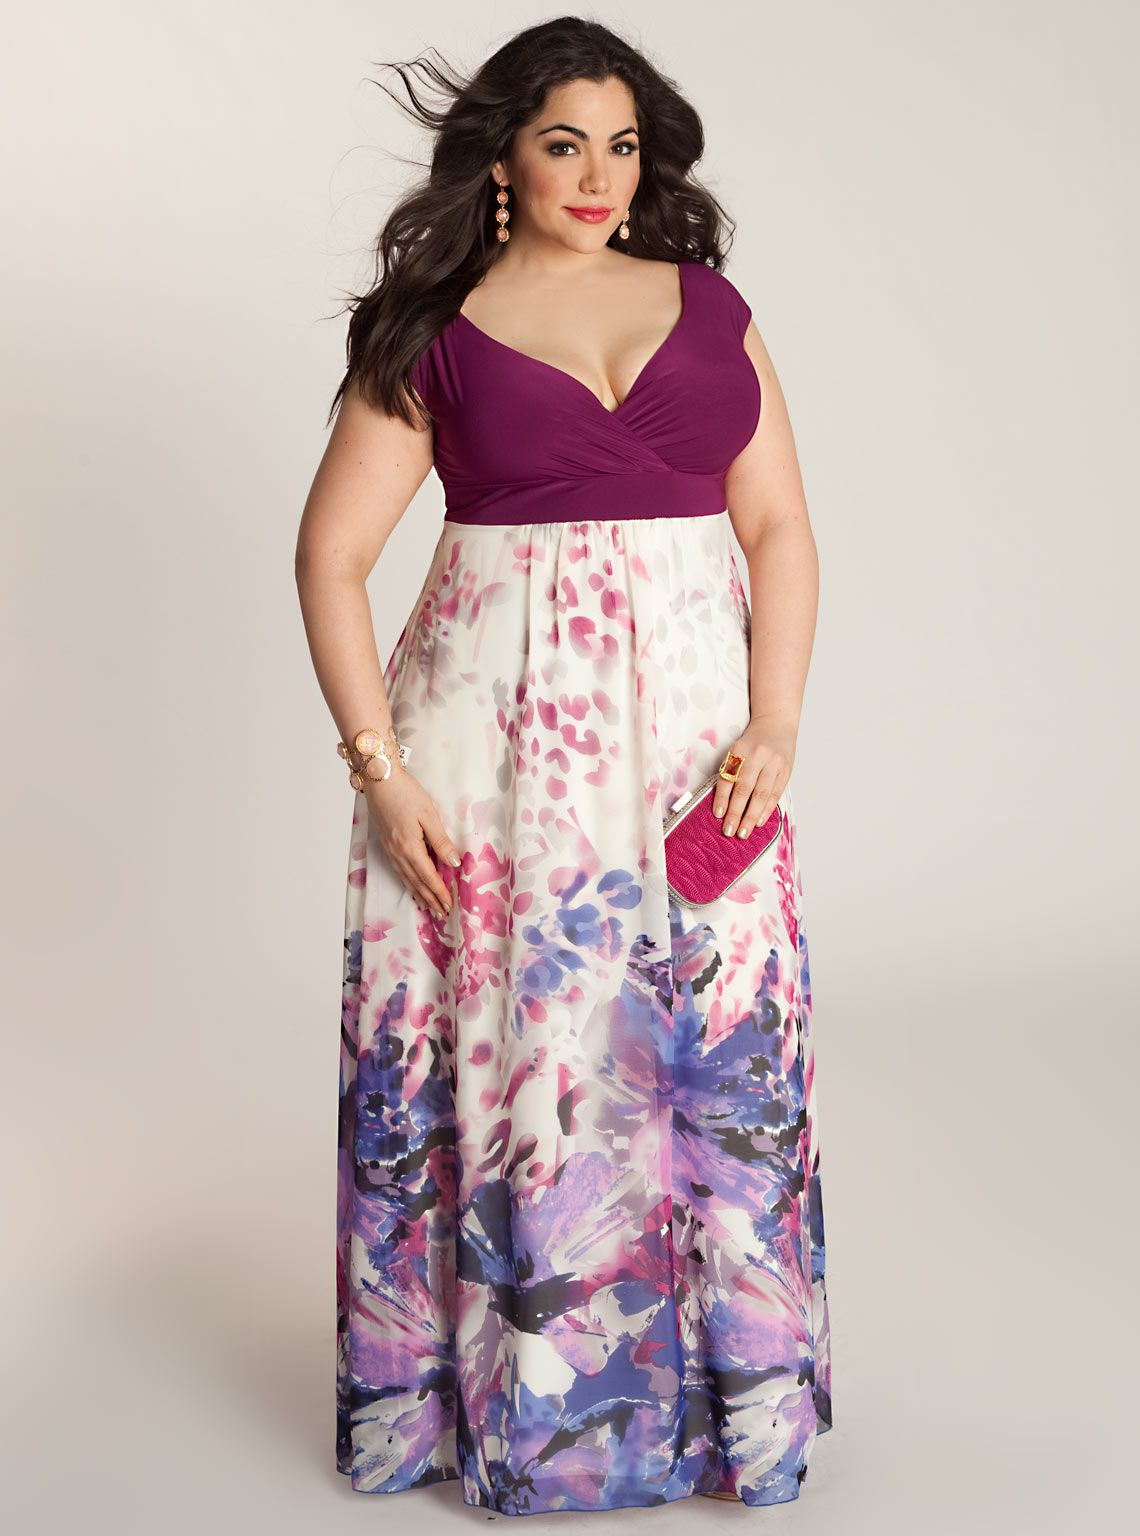 Plus Size Maxi Dresses Which Will Give A Great Look | Fashion and ...